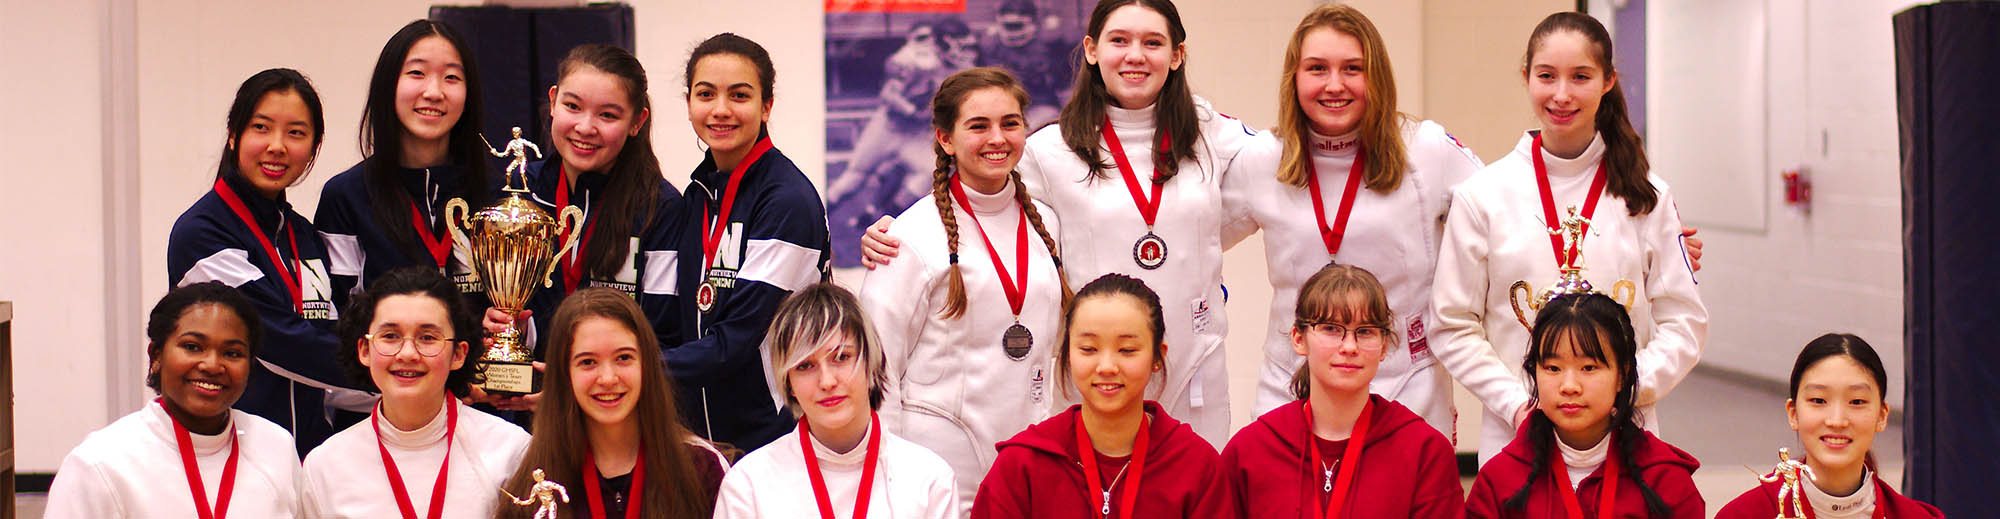 Womens Fencing Team smiling with trophies